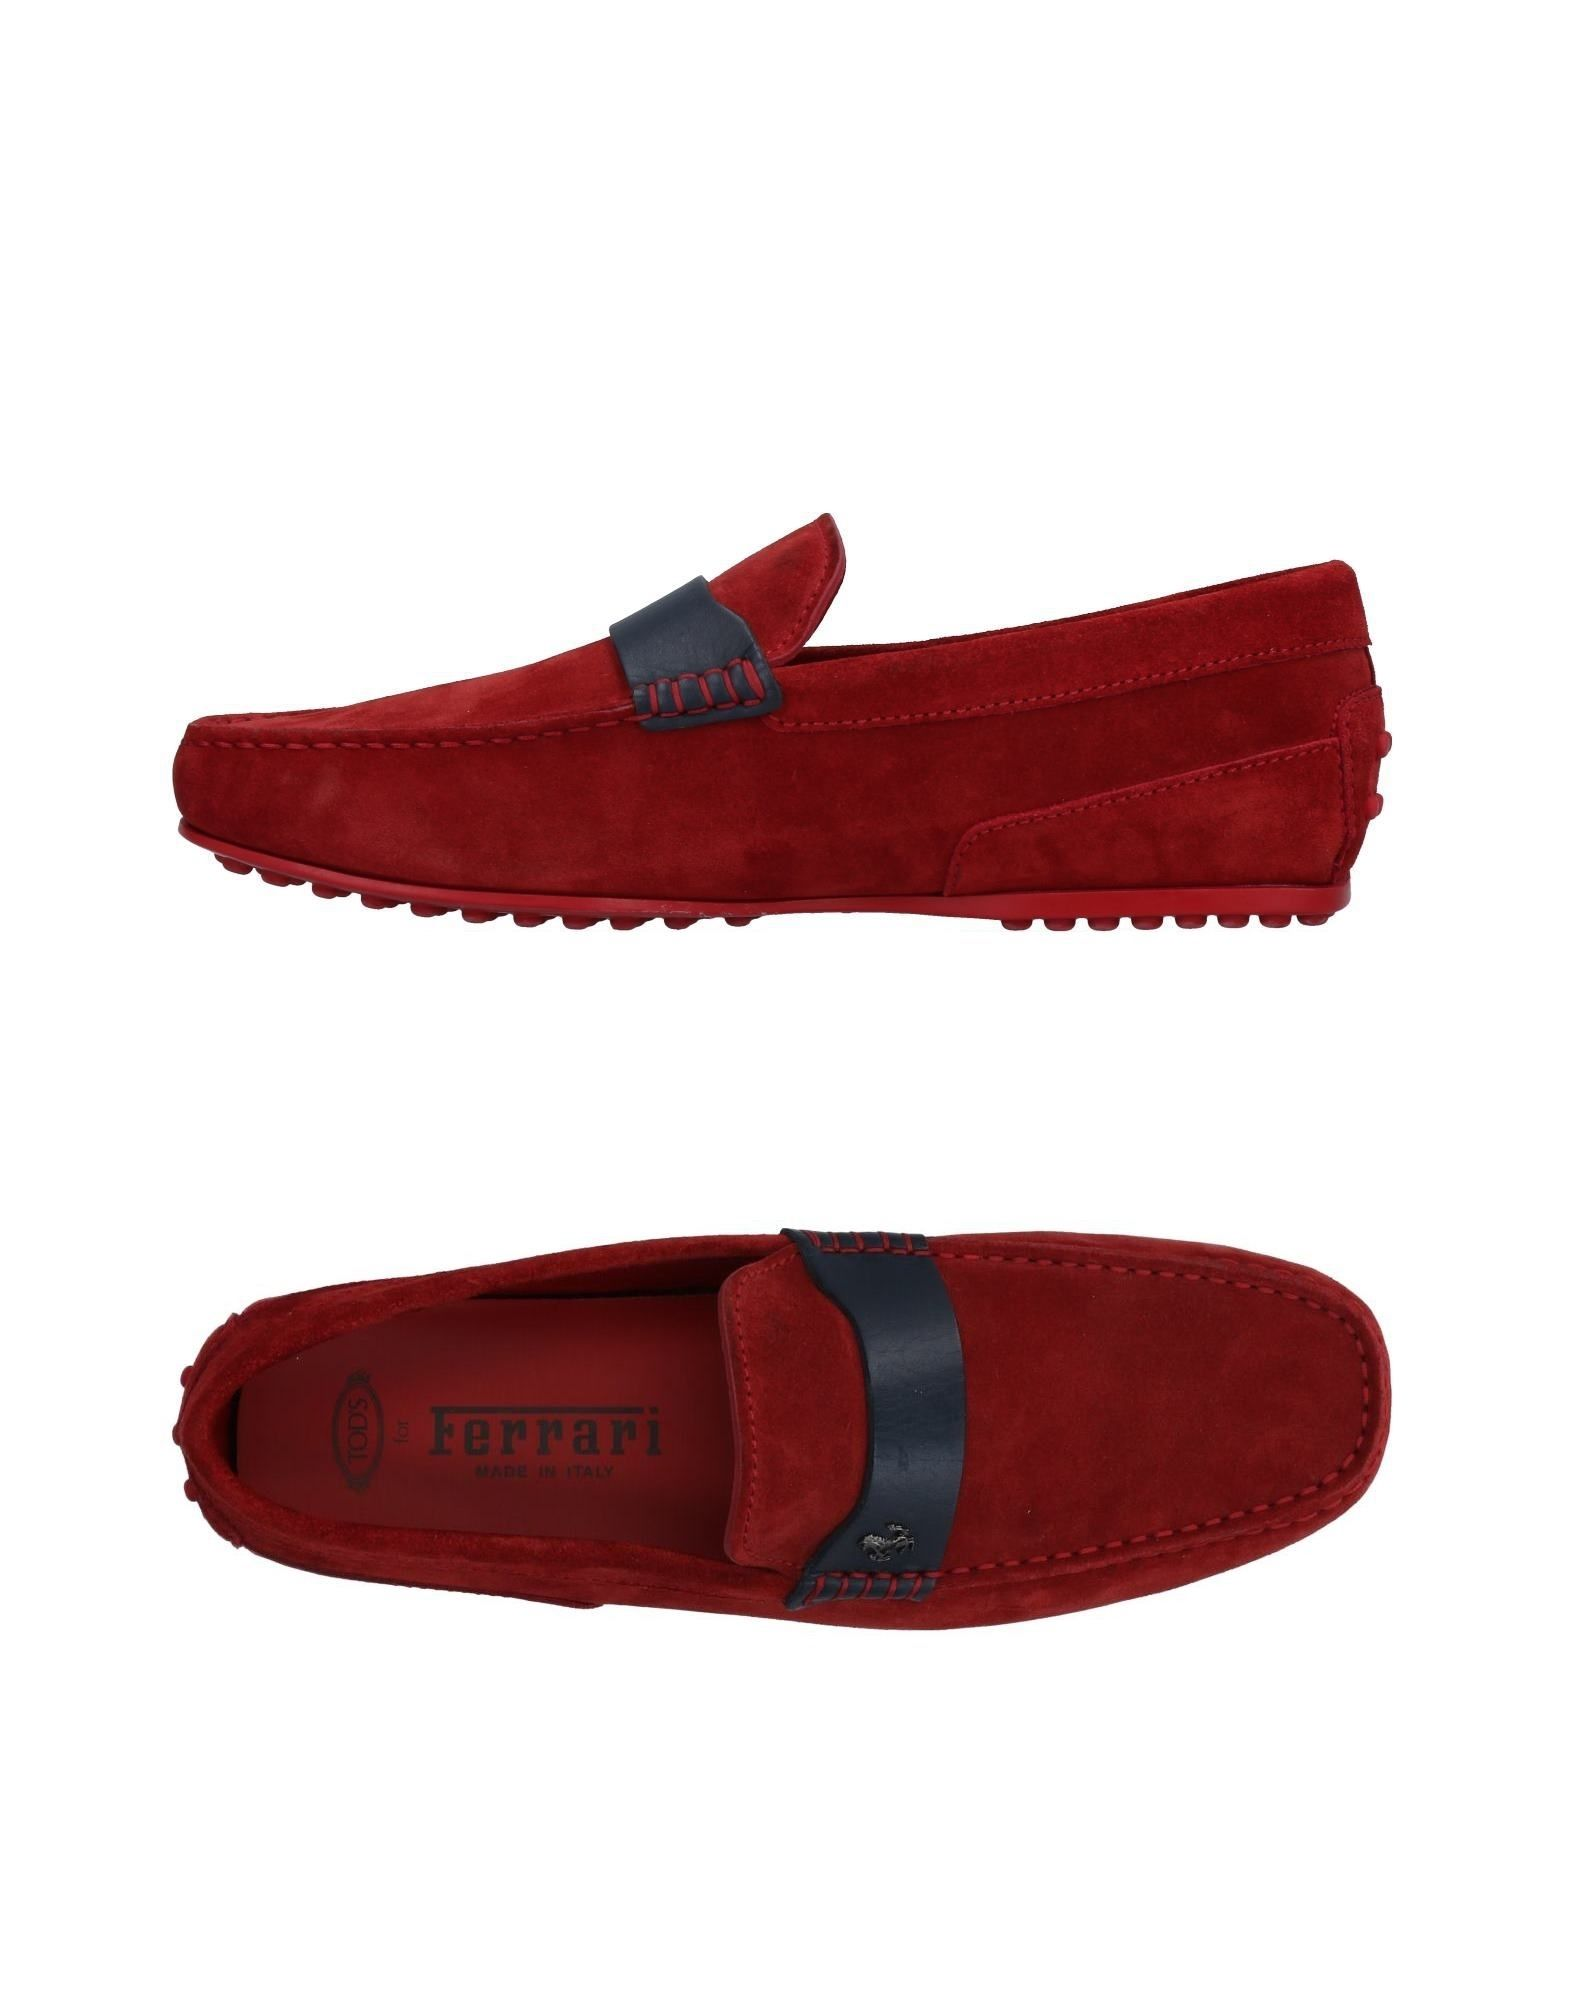 d3680584c2d Tod s For Ferrari Loafers - Men Tod s For Ferrari Loafers online on ...